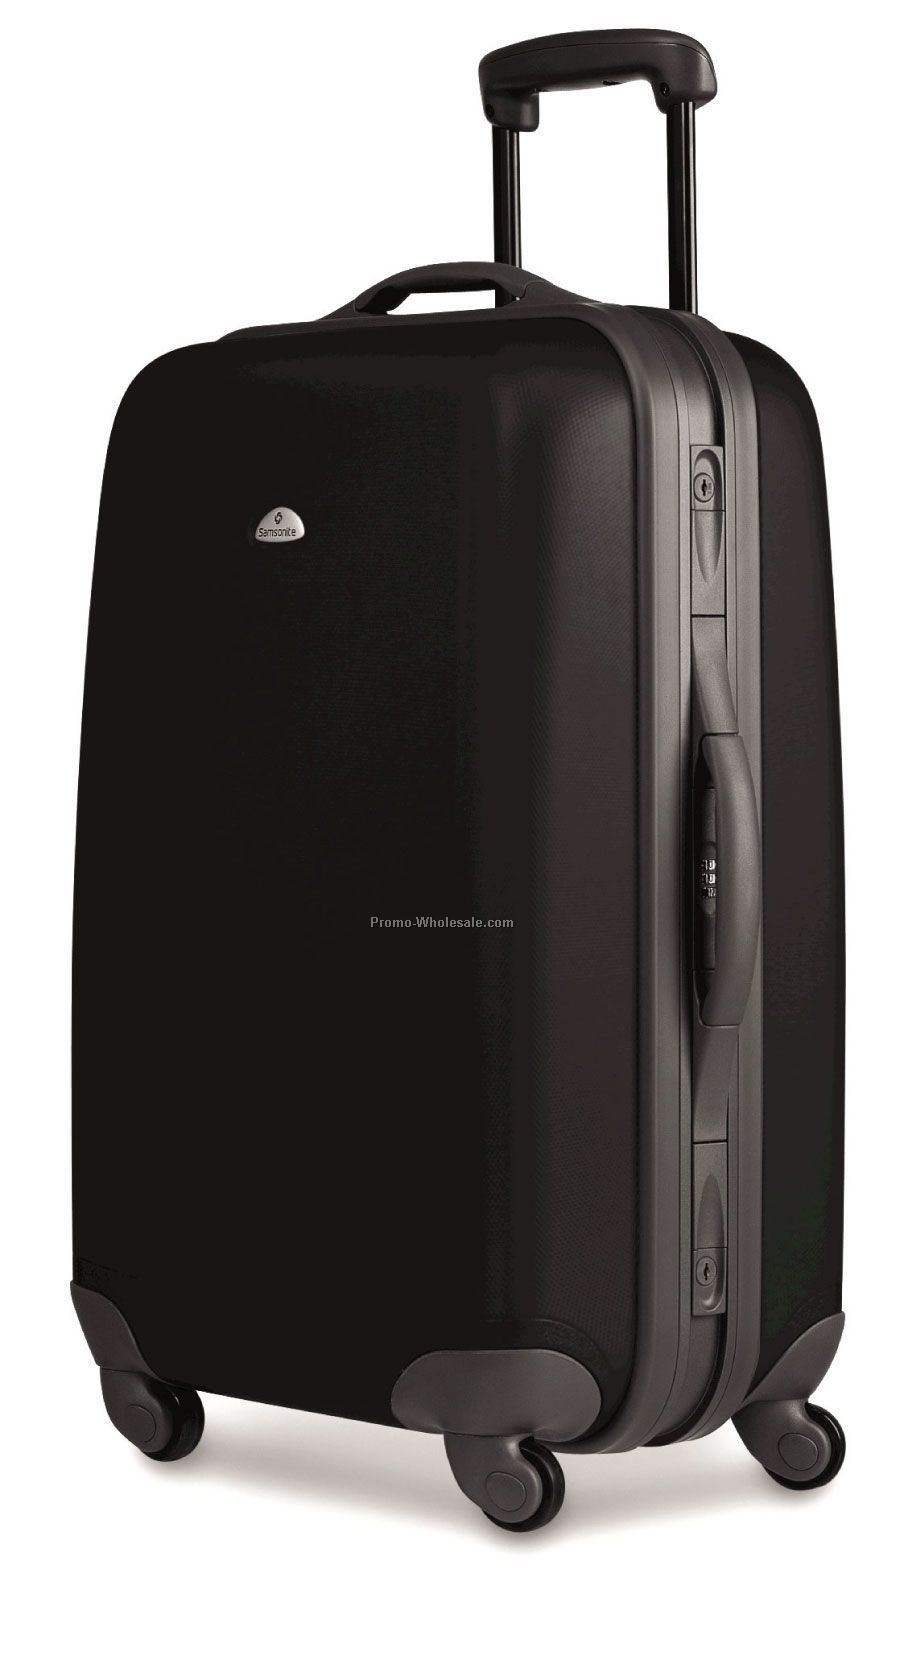 26 Spinner Upright Cruiseair Suitcase